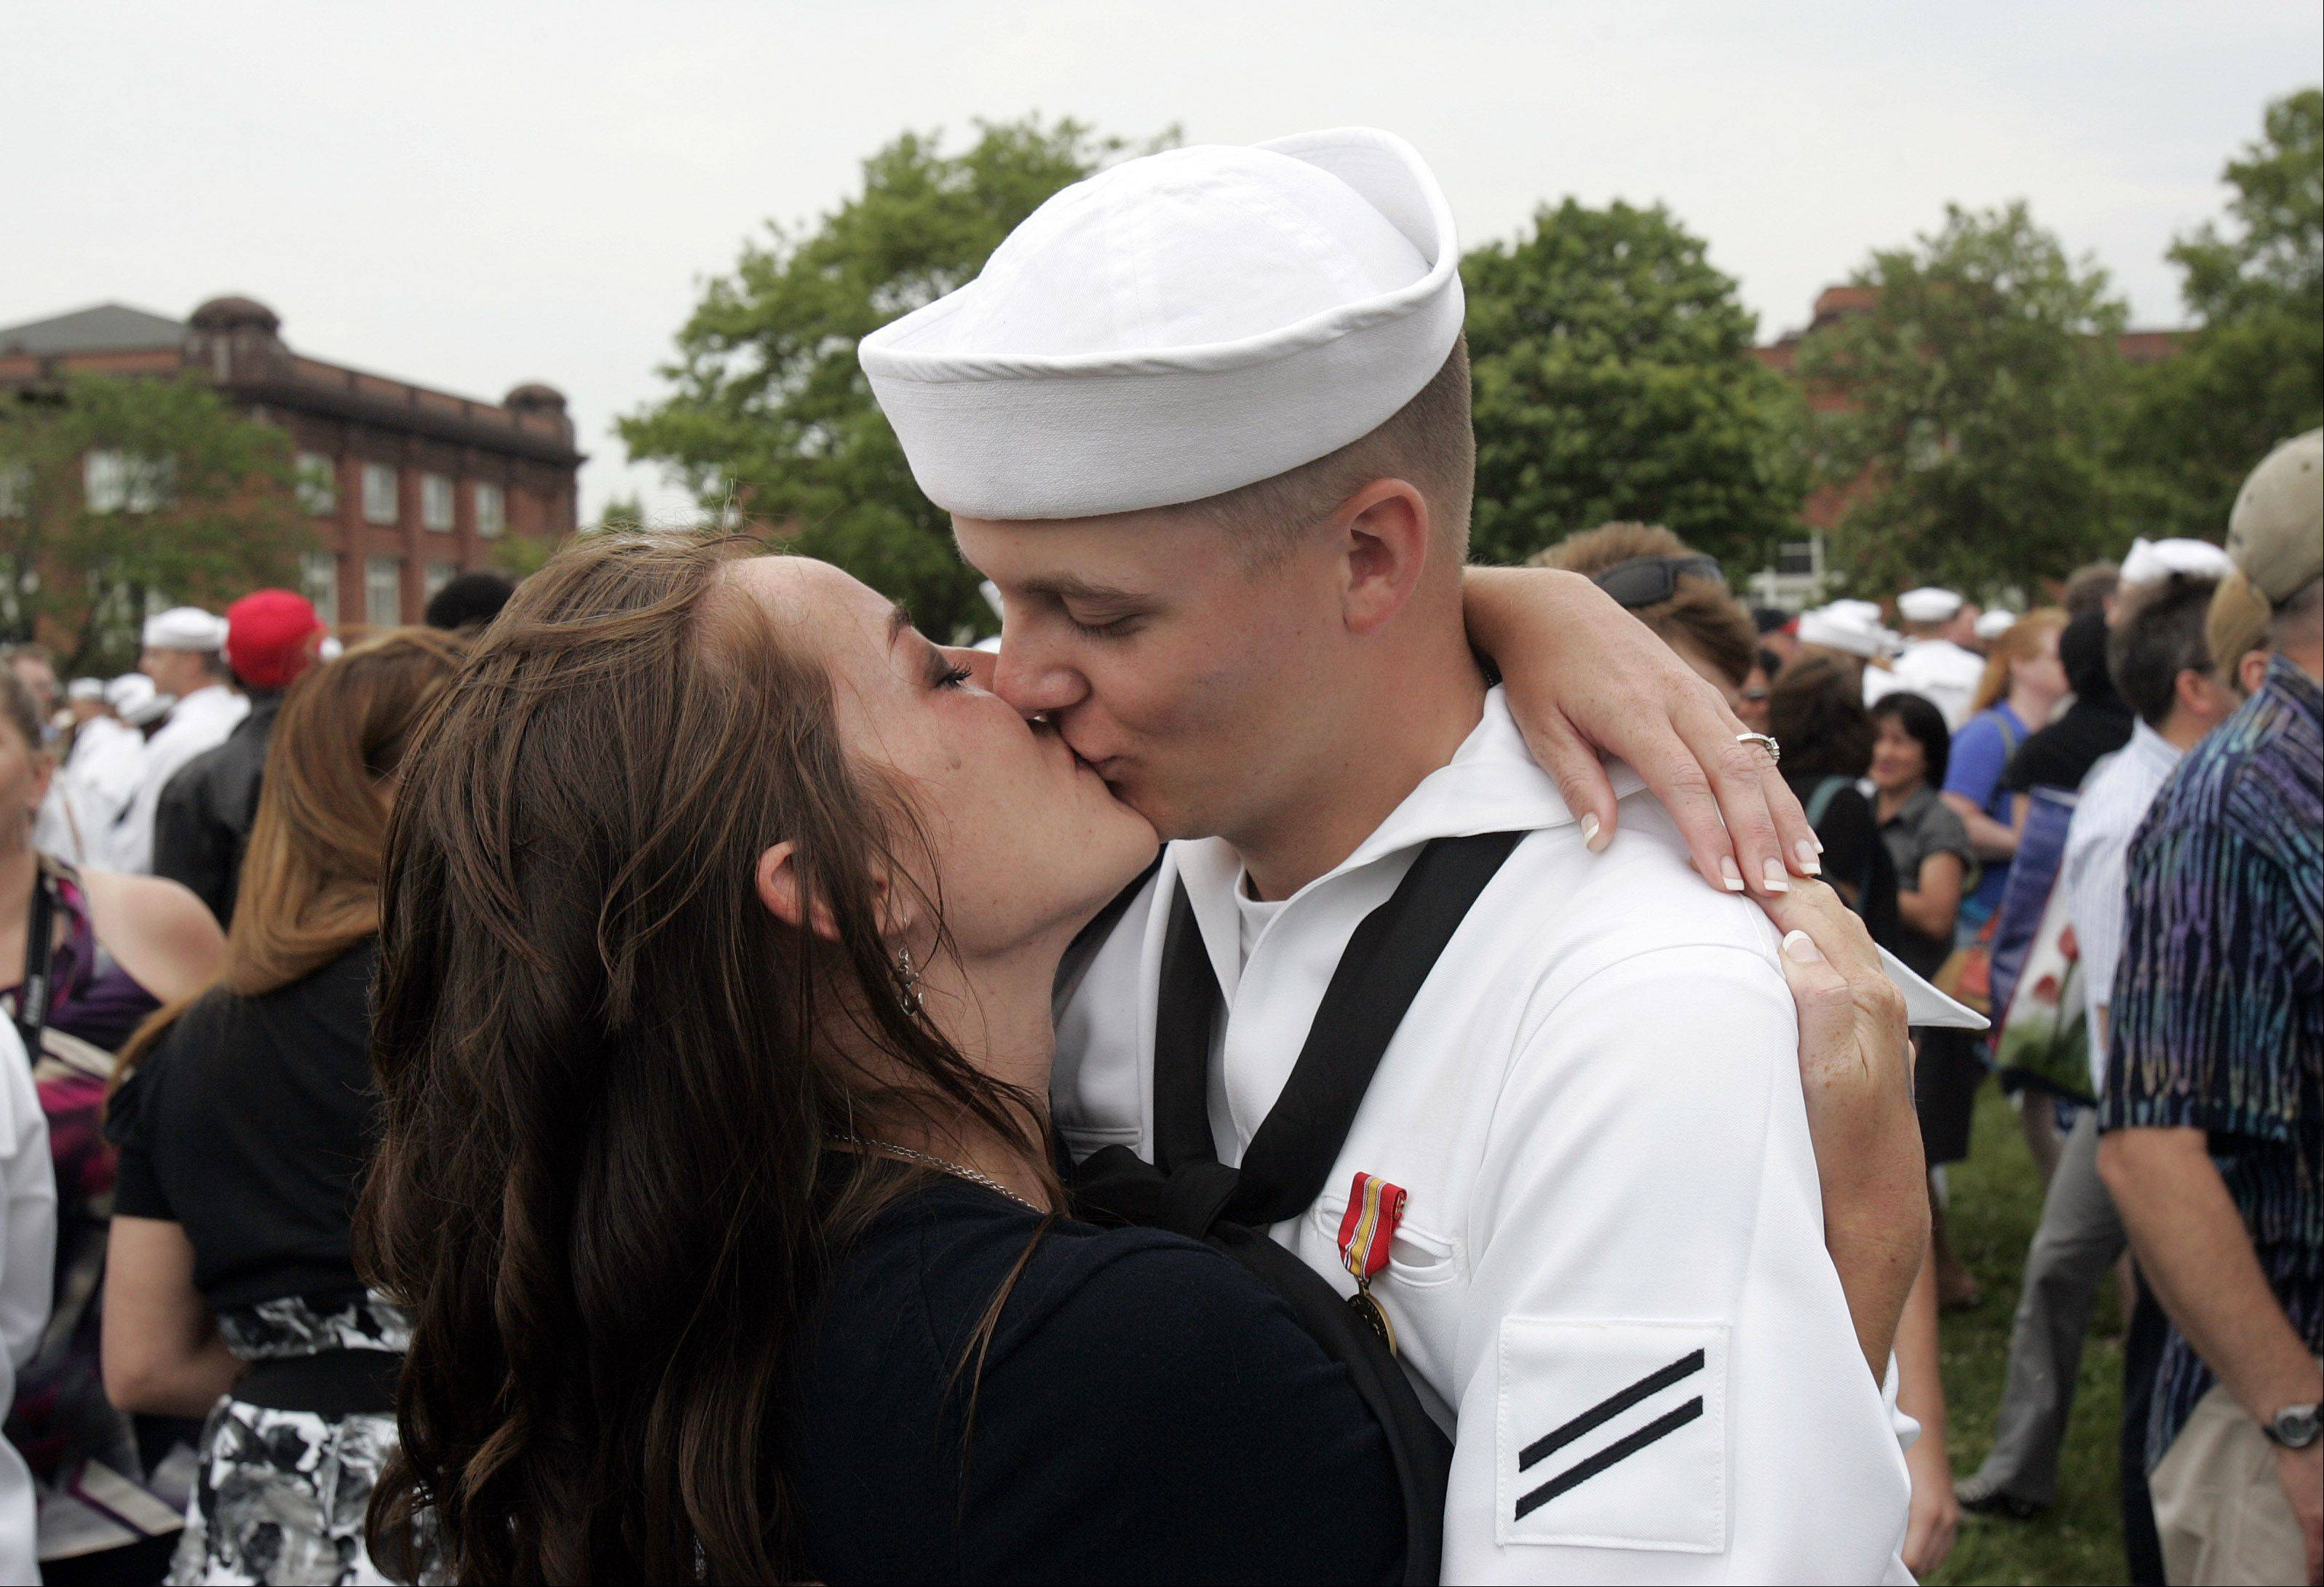 Jayson Cobb of Alabama hugs his fiance Haley Martin after graduation ceremonies at Great Lakes Naval Station Friday. About 1,000 recruits graduated on its 100th anniversary.